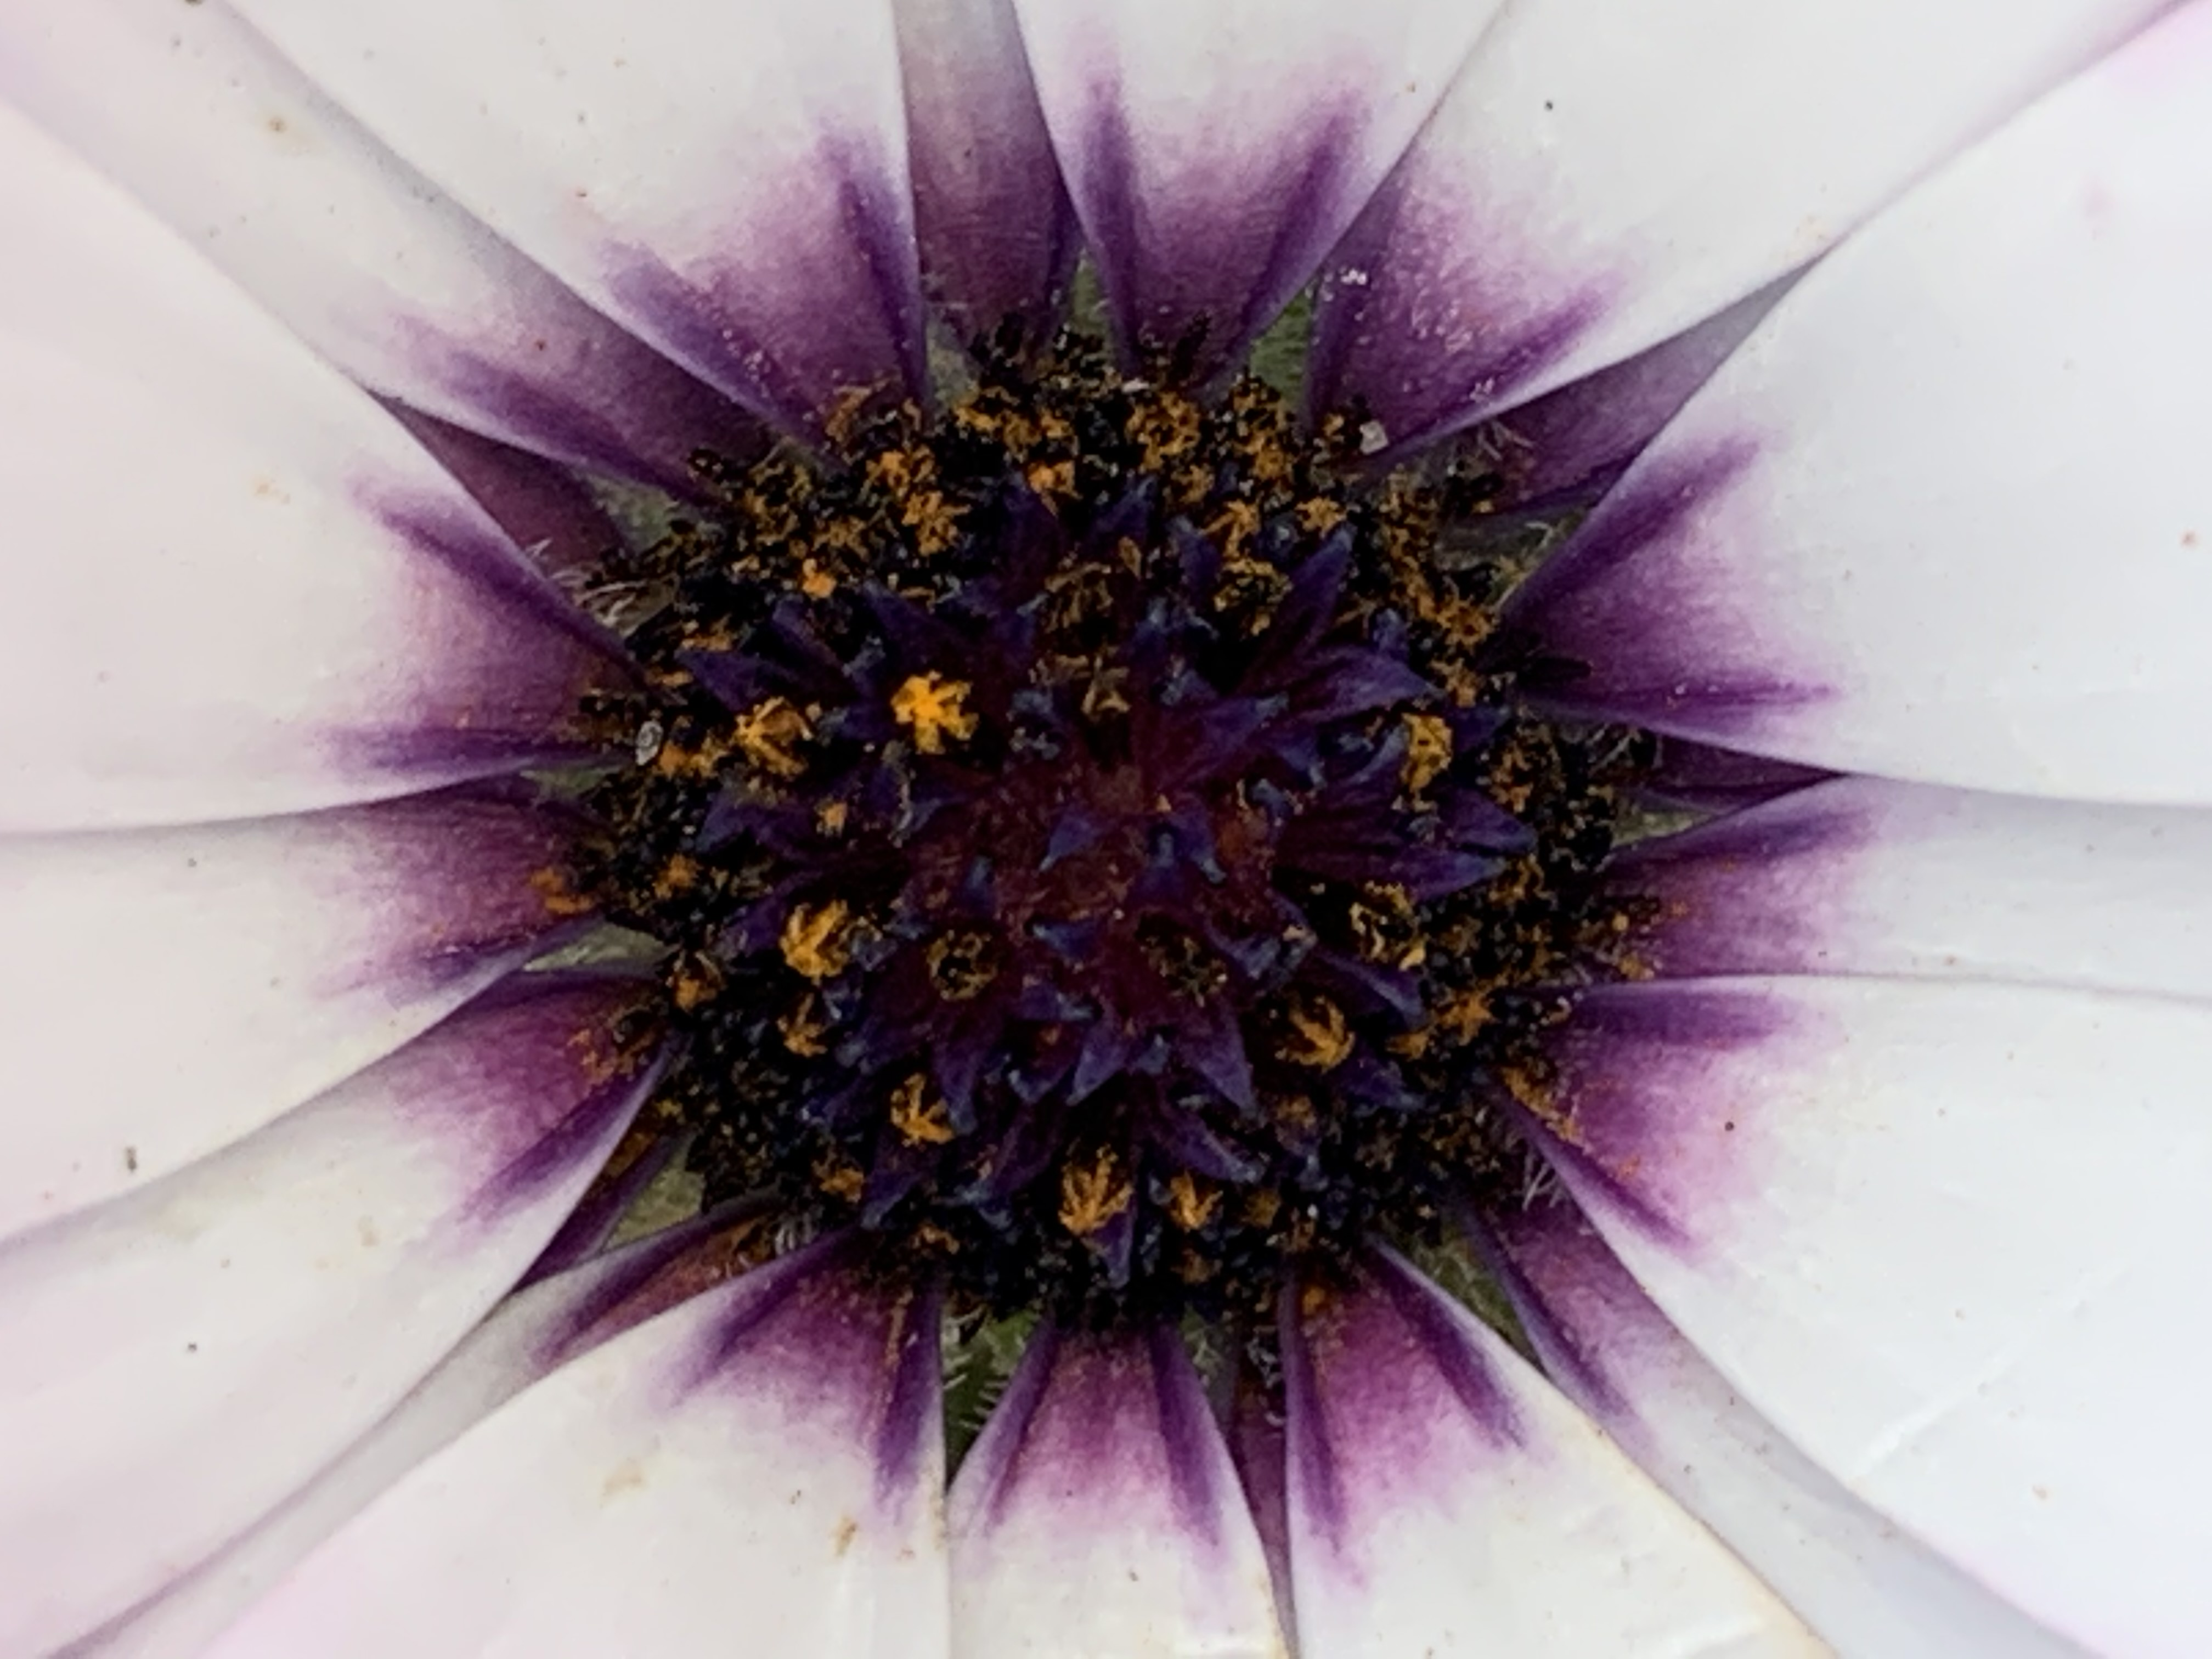 Name: Liv. Prize: Shortlist. There are lots of maths in this flower: fractals with small purple flowers and even smaller orange ones inside;  pattern of colours repeated on each petal; shapes: circle in the middle, triangles between the petals and stars in the center.